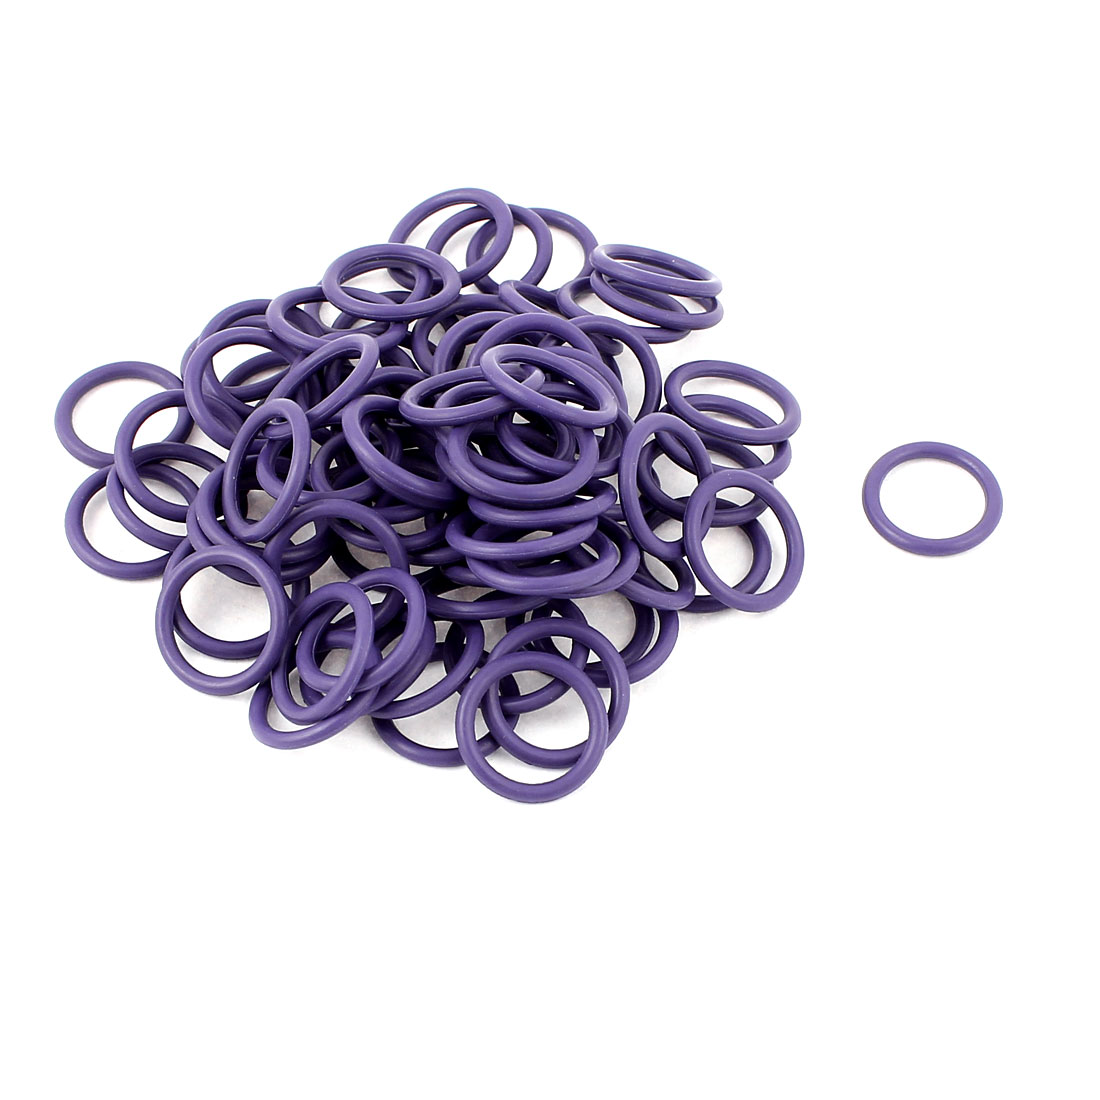 100 Pcs Rubber Gasket Ring Purple O-ring Seals 14.38mm x 10.82mm x 1.78mm